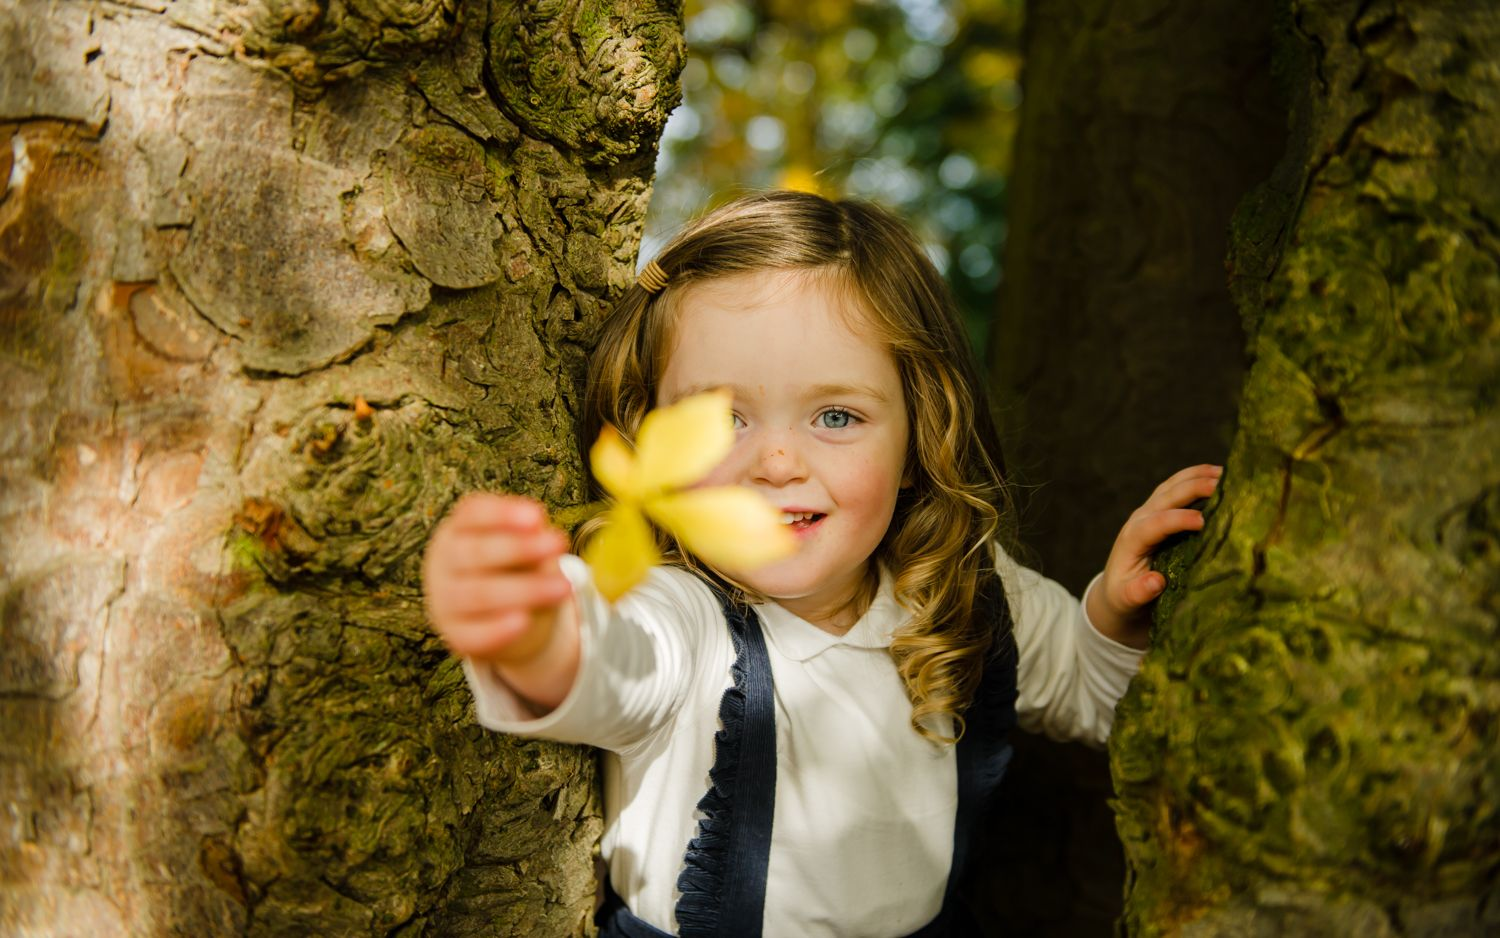 photograph of girl holding leaf hidden in tree